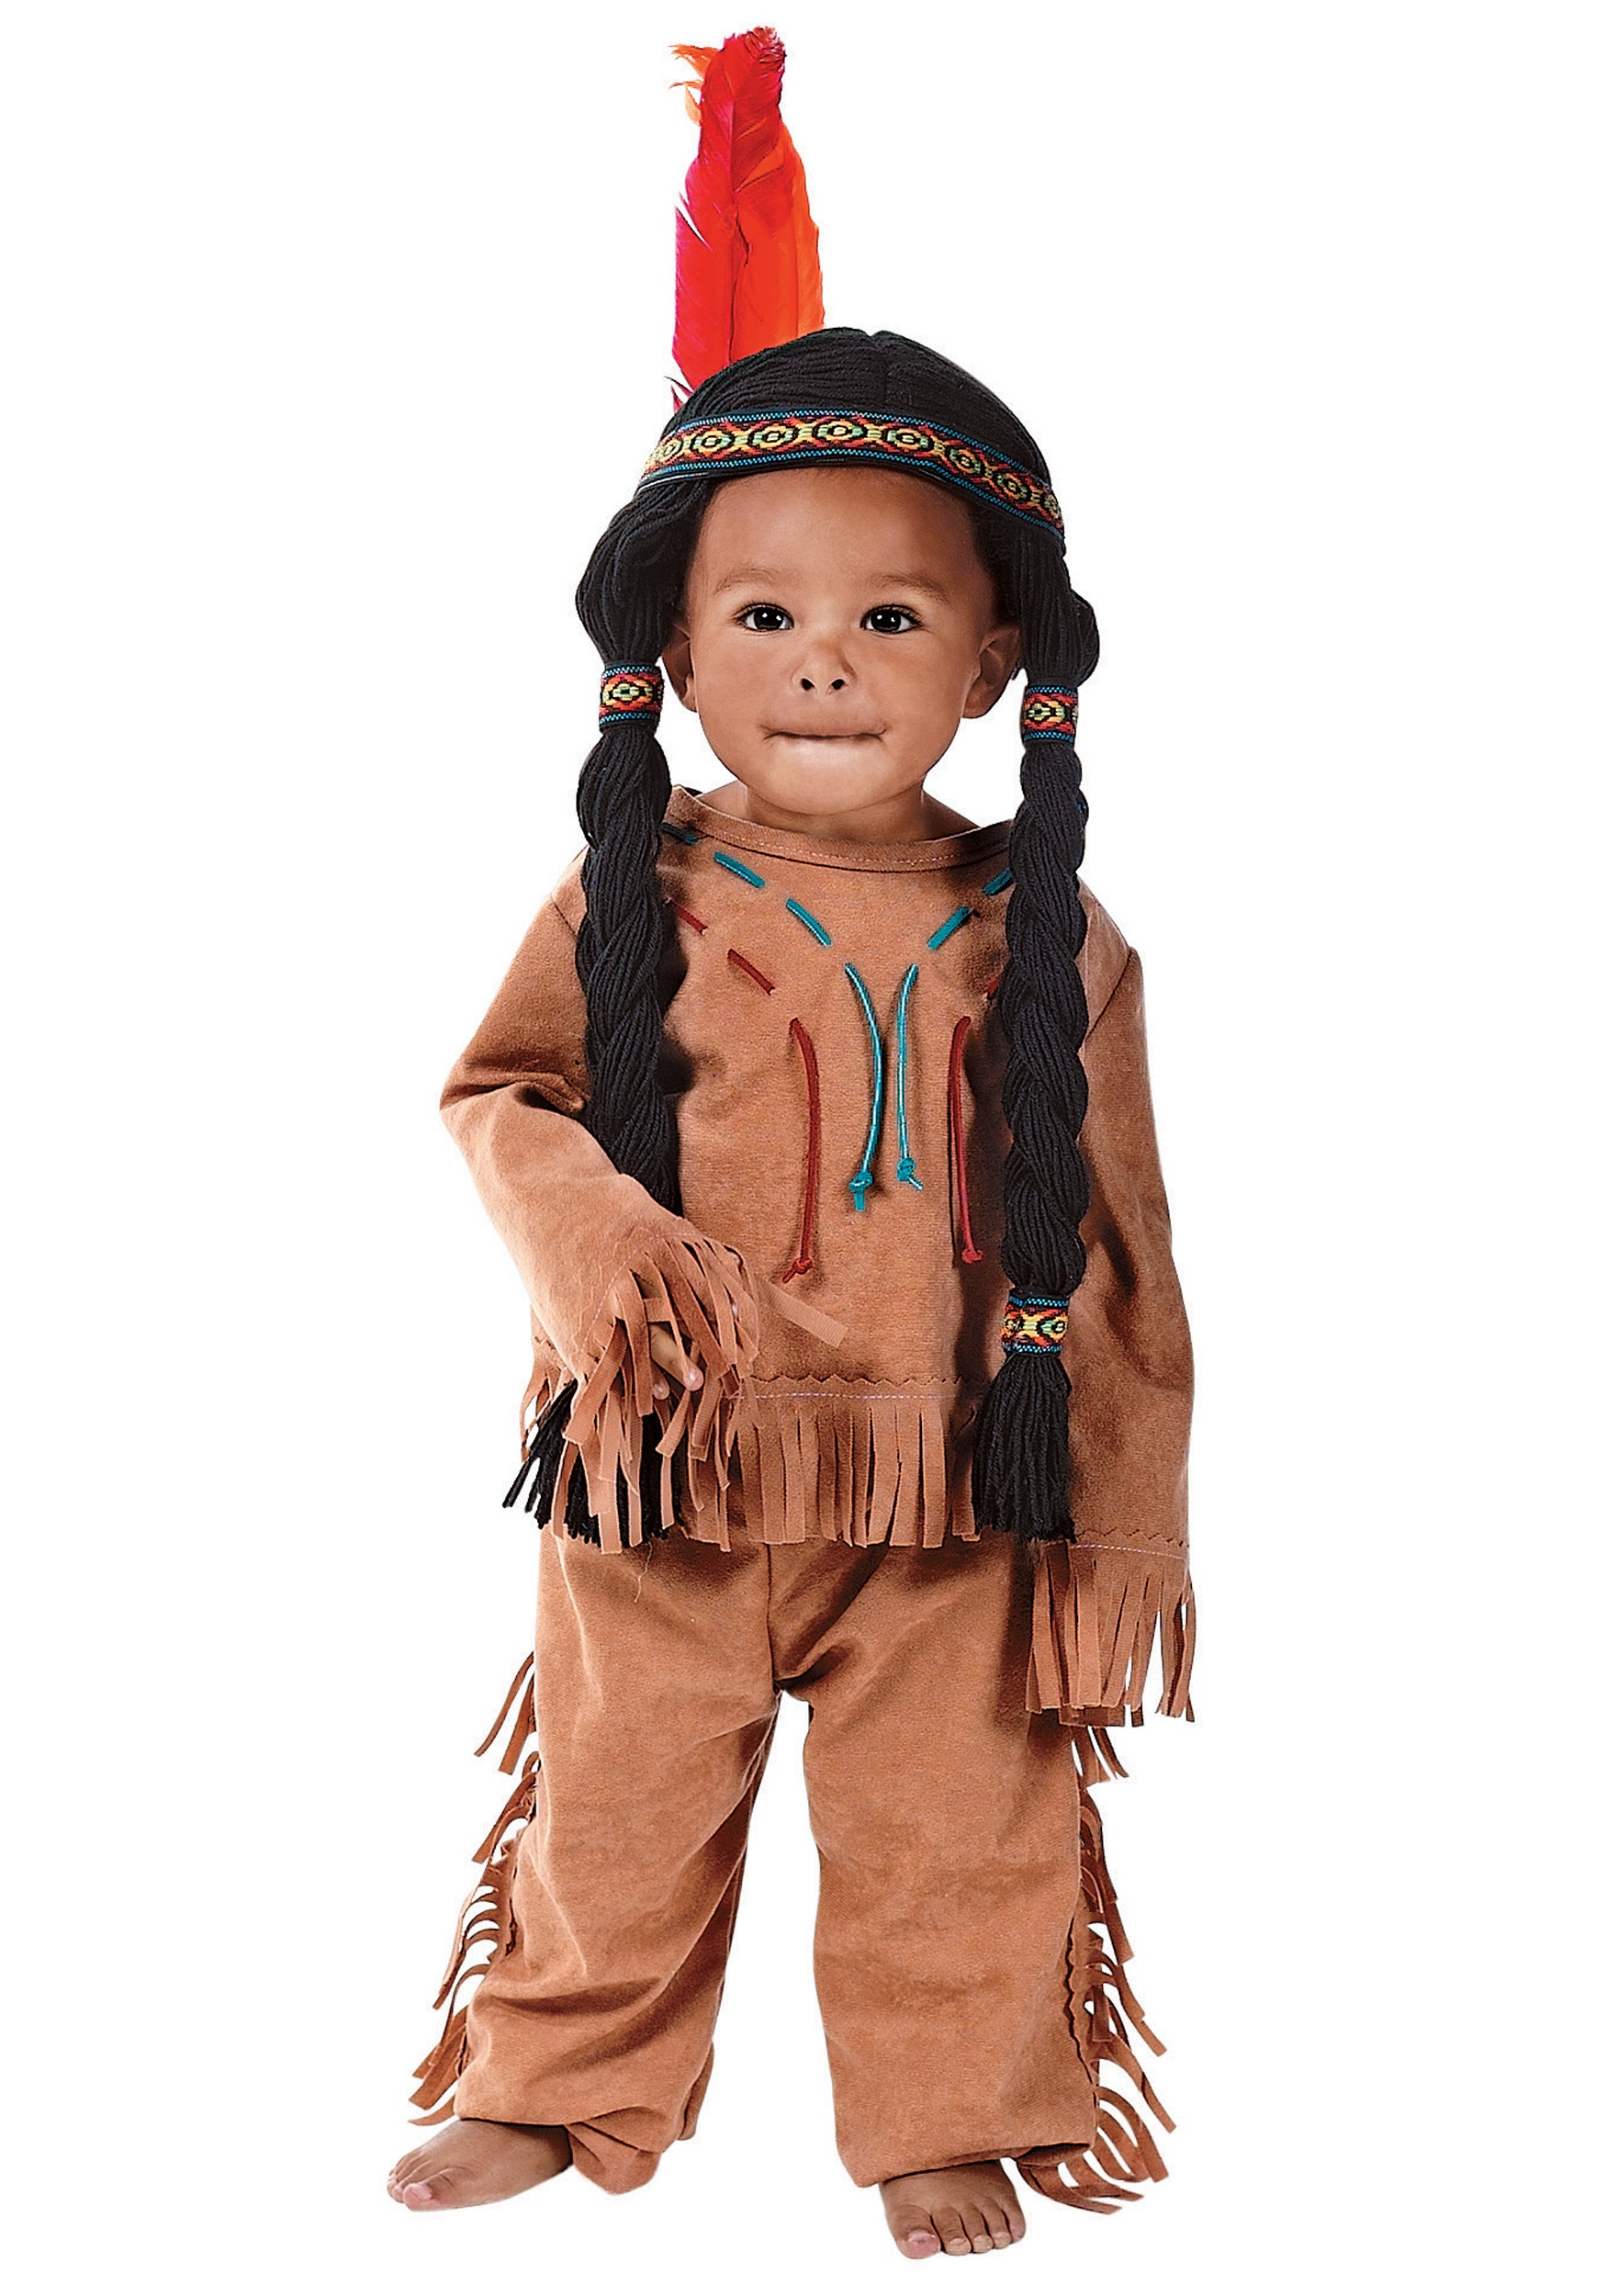 Kids Halloween Costumes Boys Indian Boy Toddler Costume